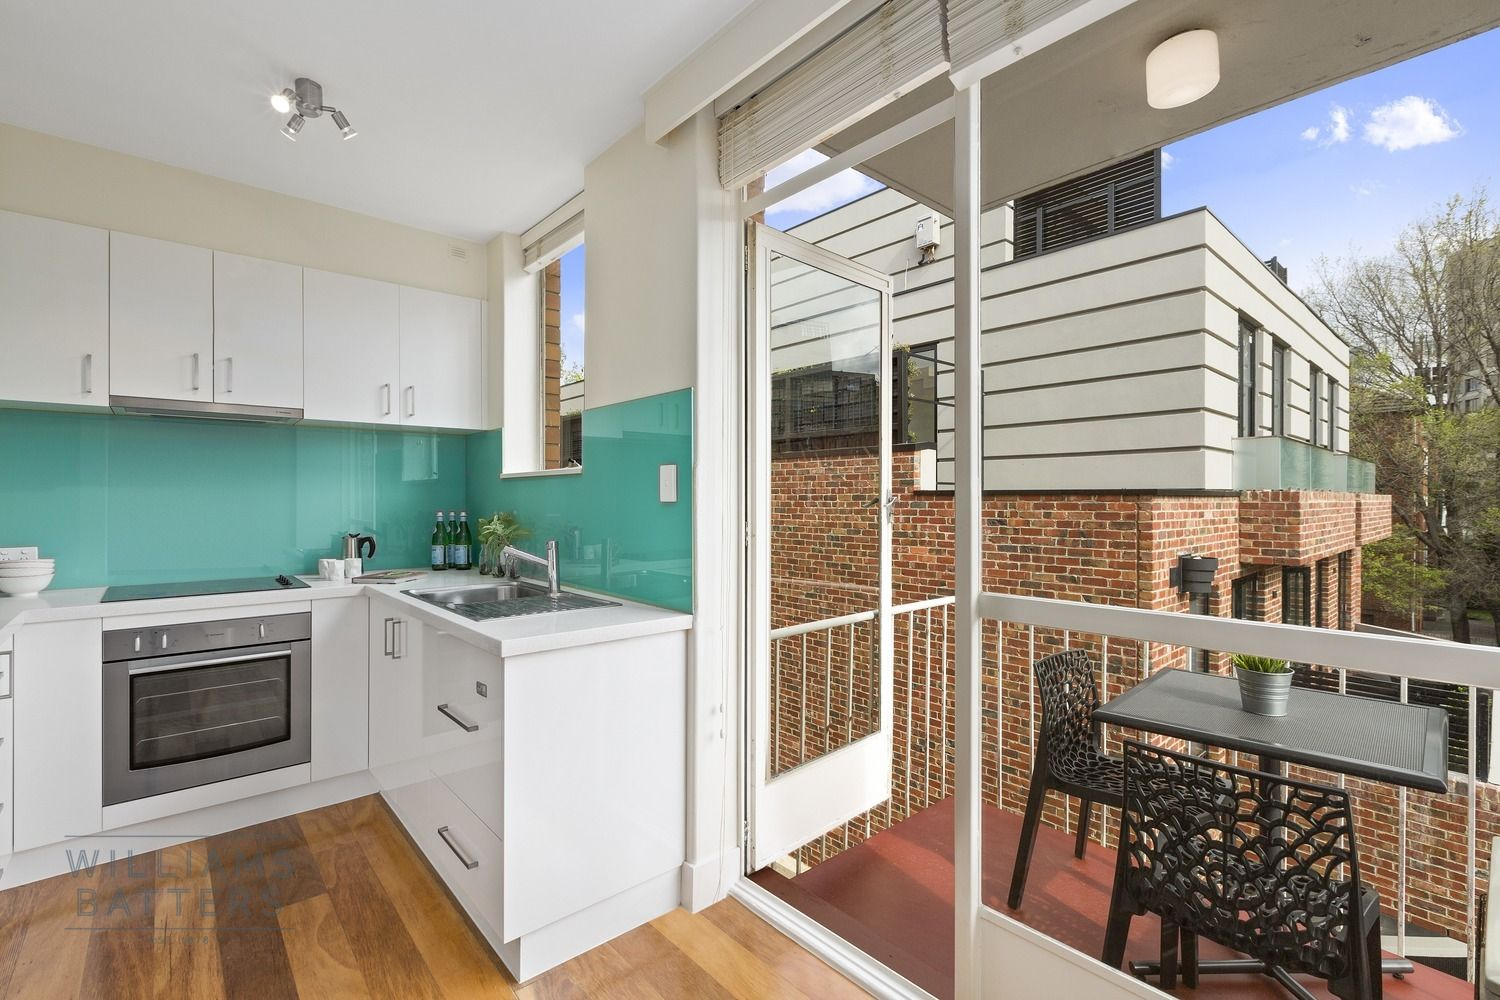 7/49 Adams Street, South Yarra VIC 3141, Image 2